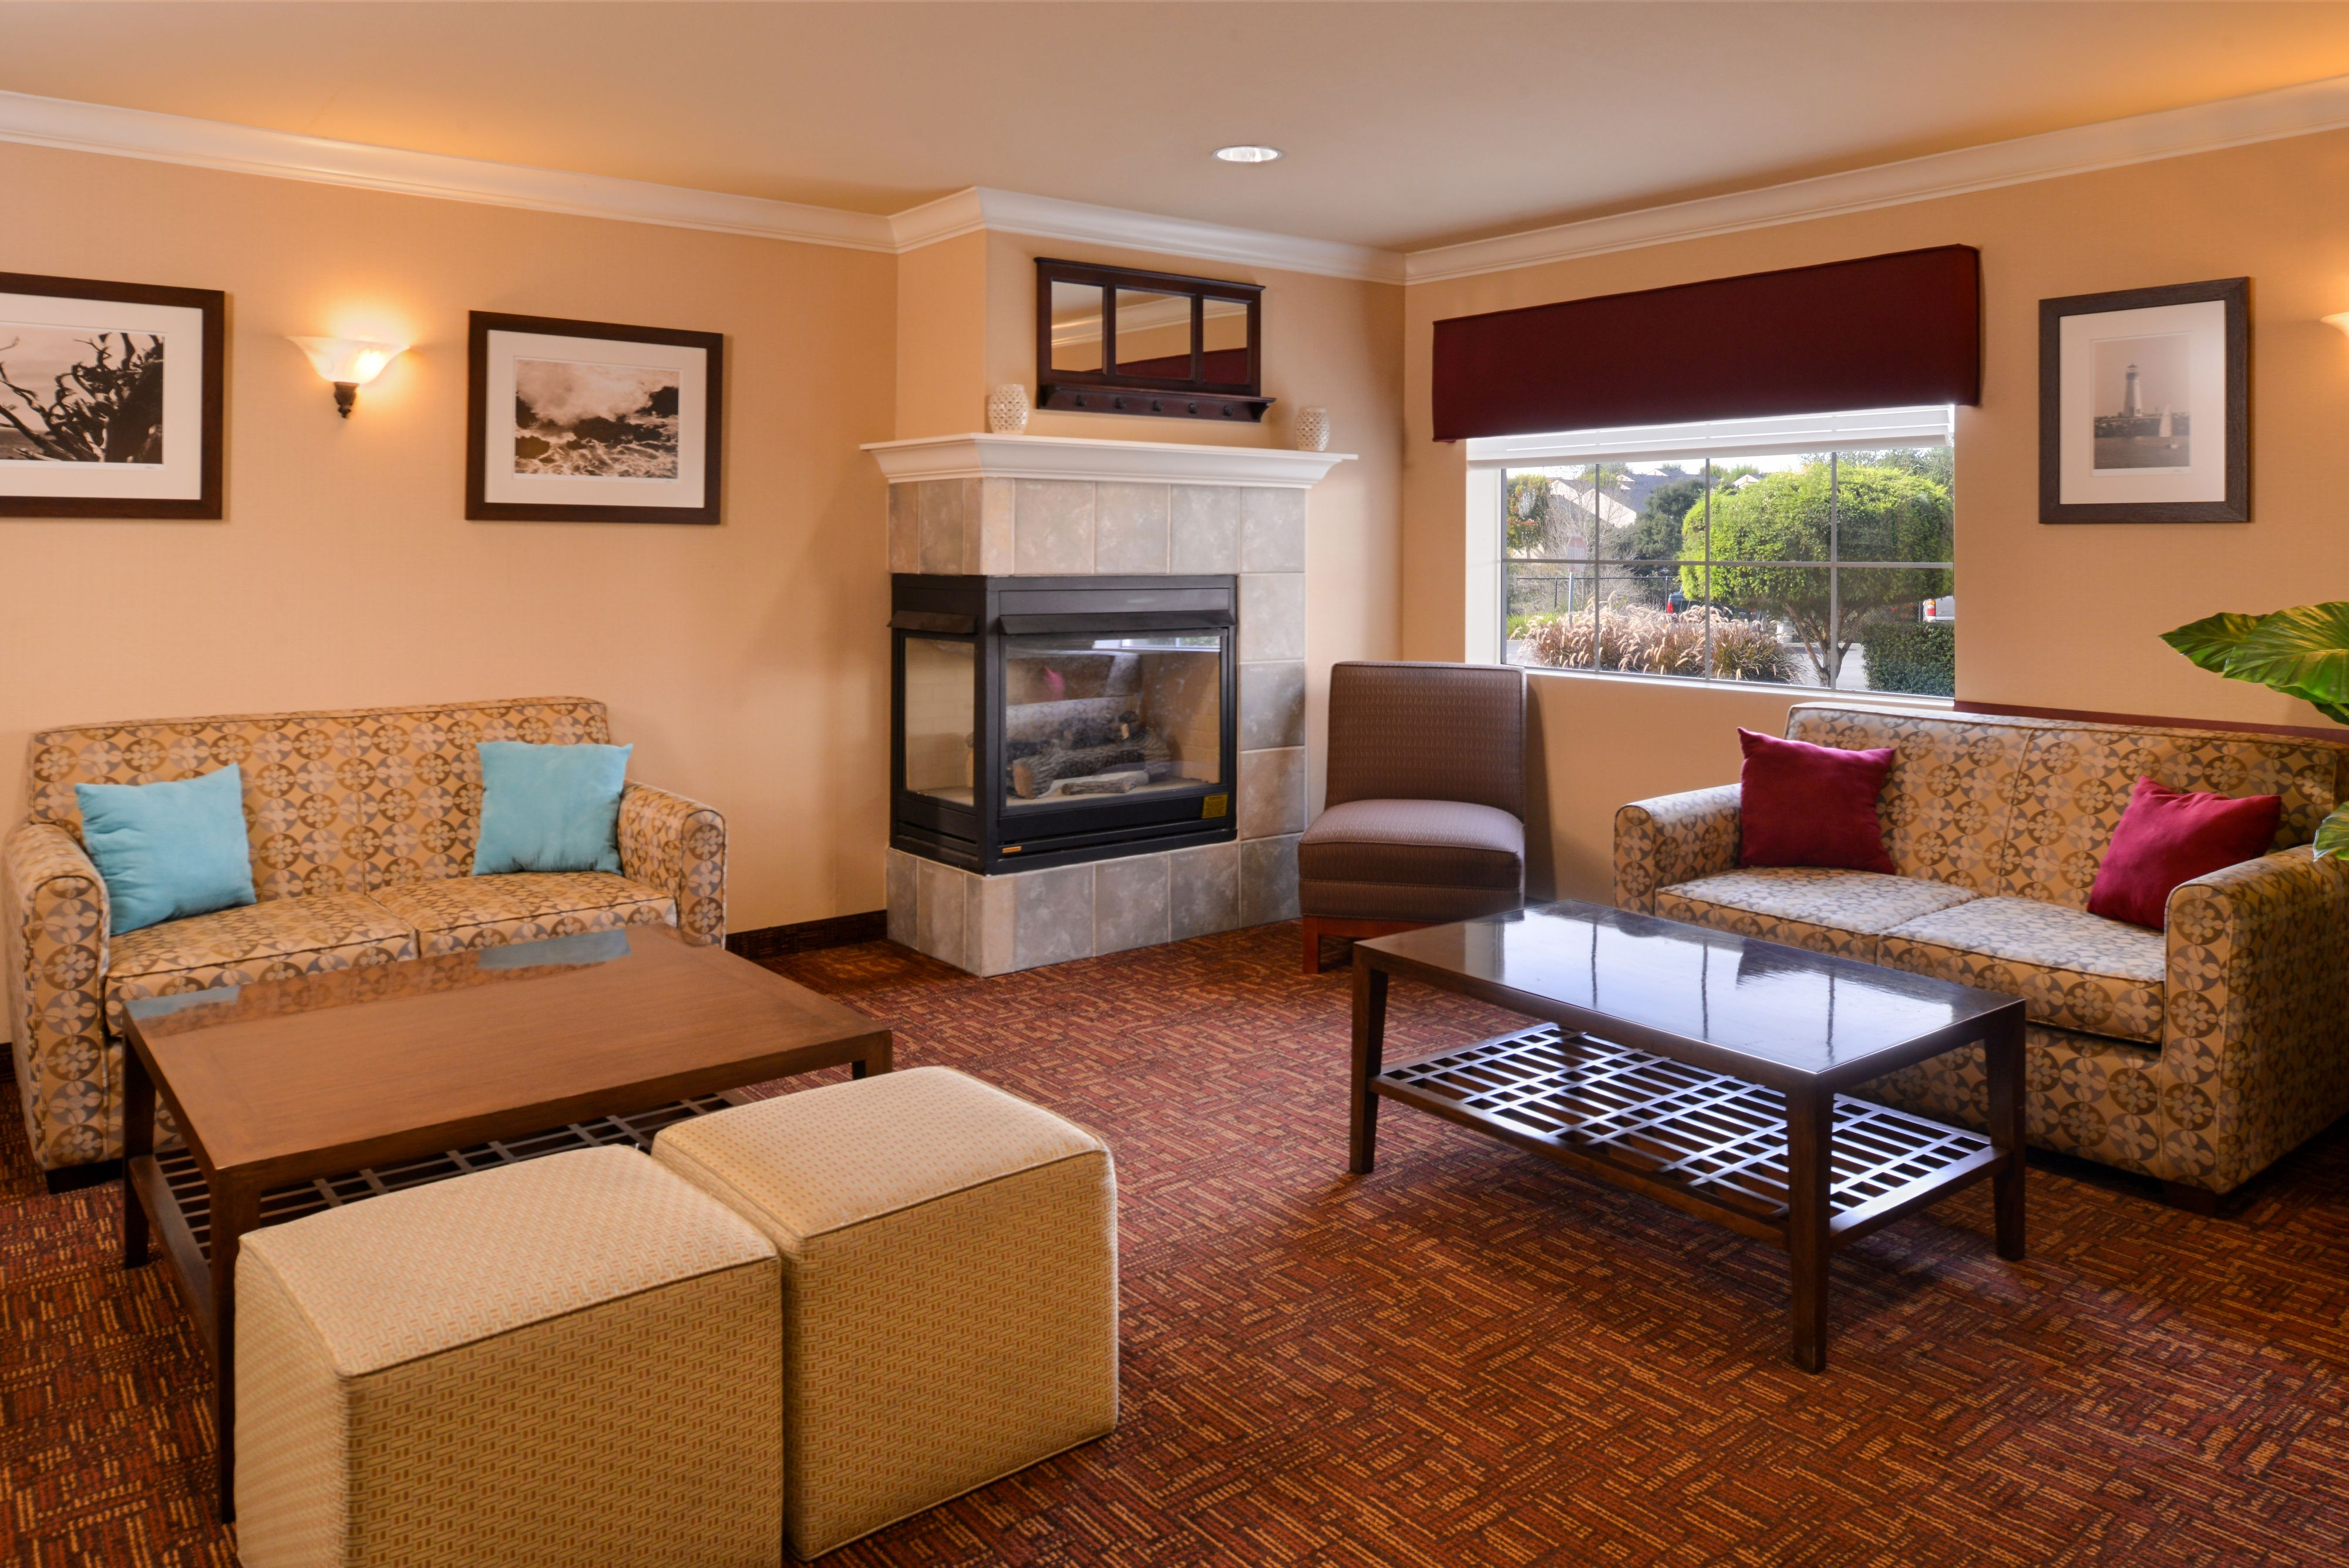 Holiday Inn Express & Suites Watsonville image 8